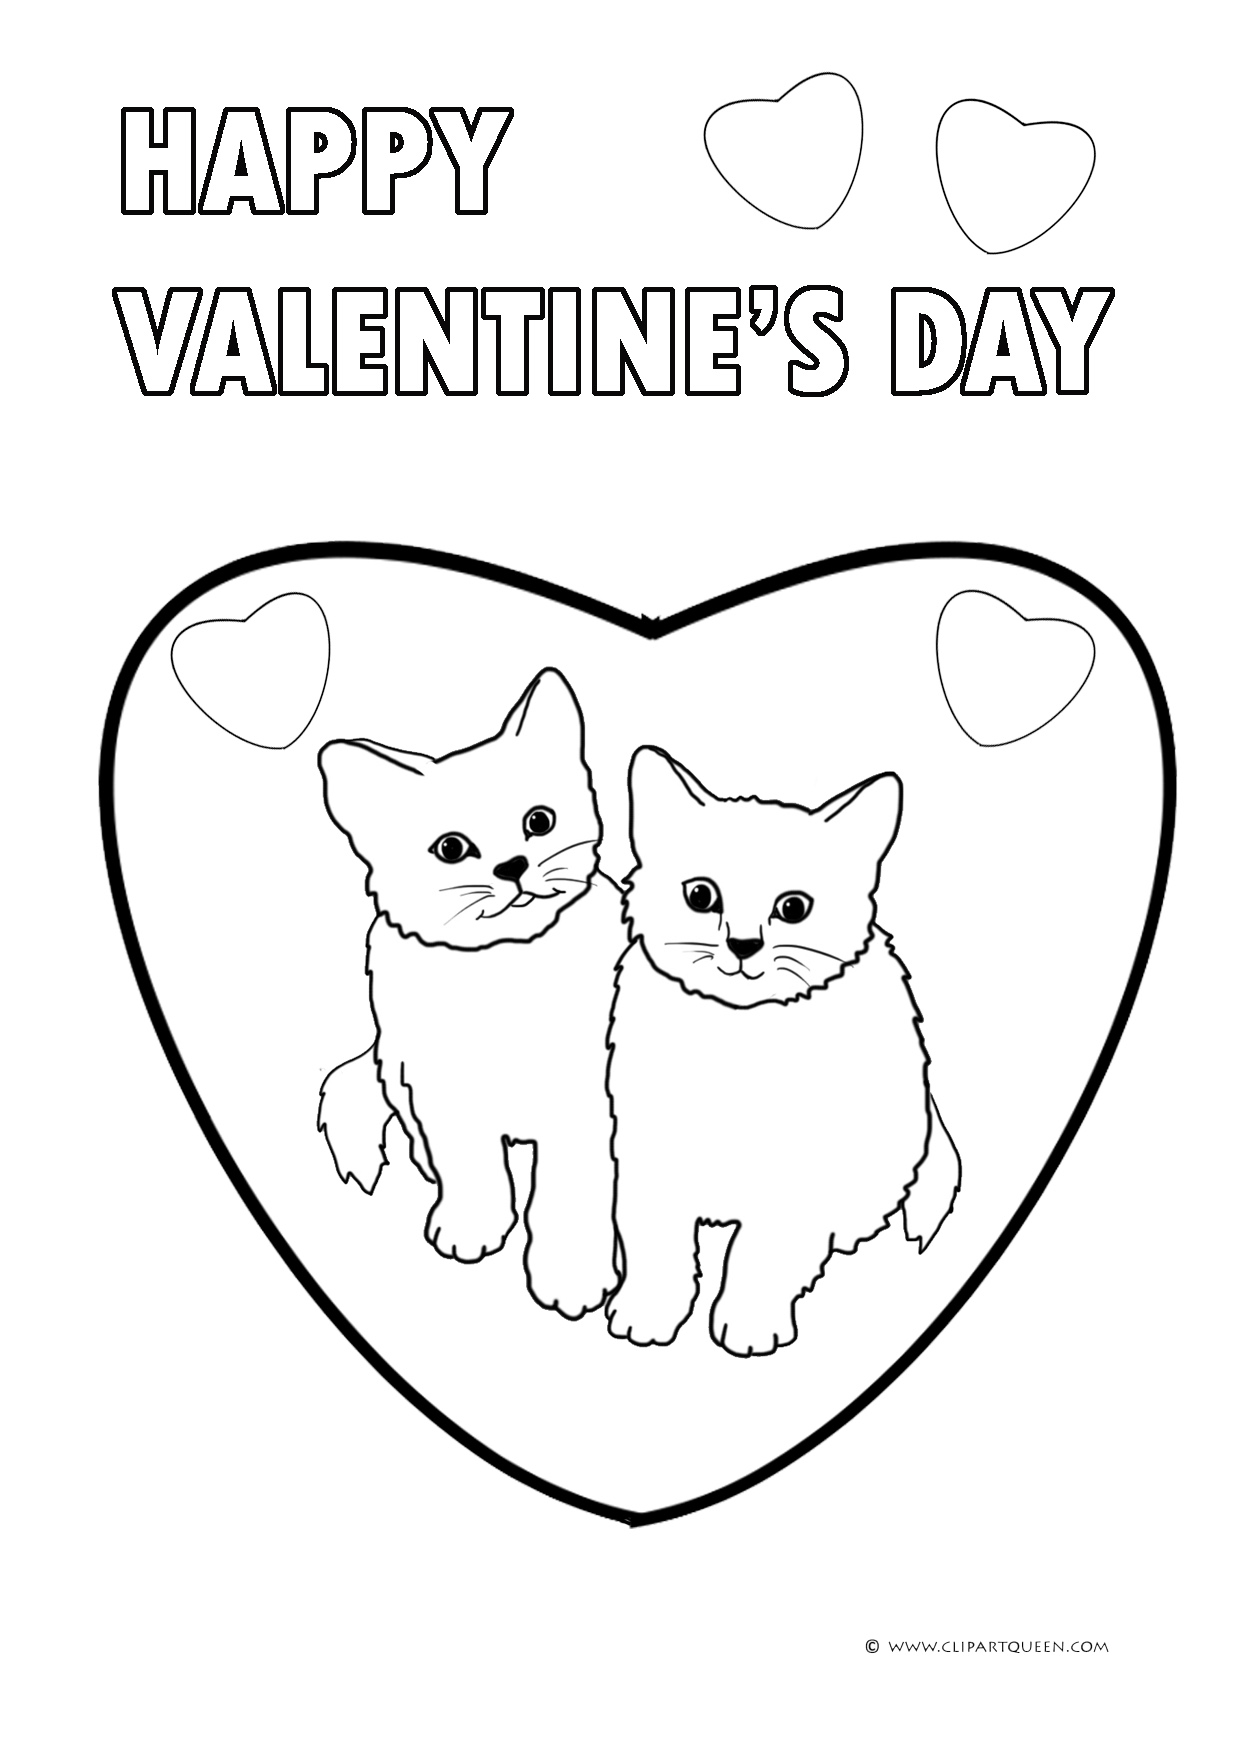 12 Valentine 39 s Day coloring pages